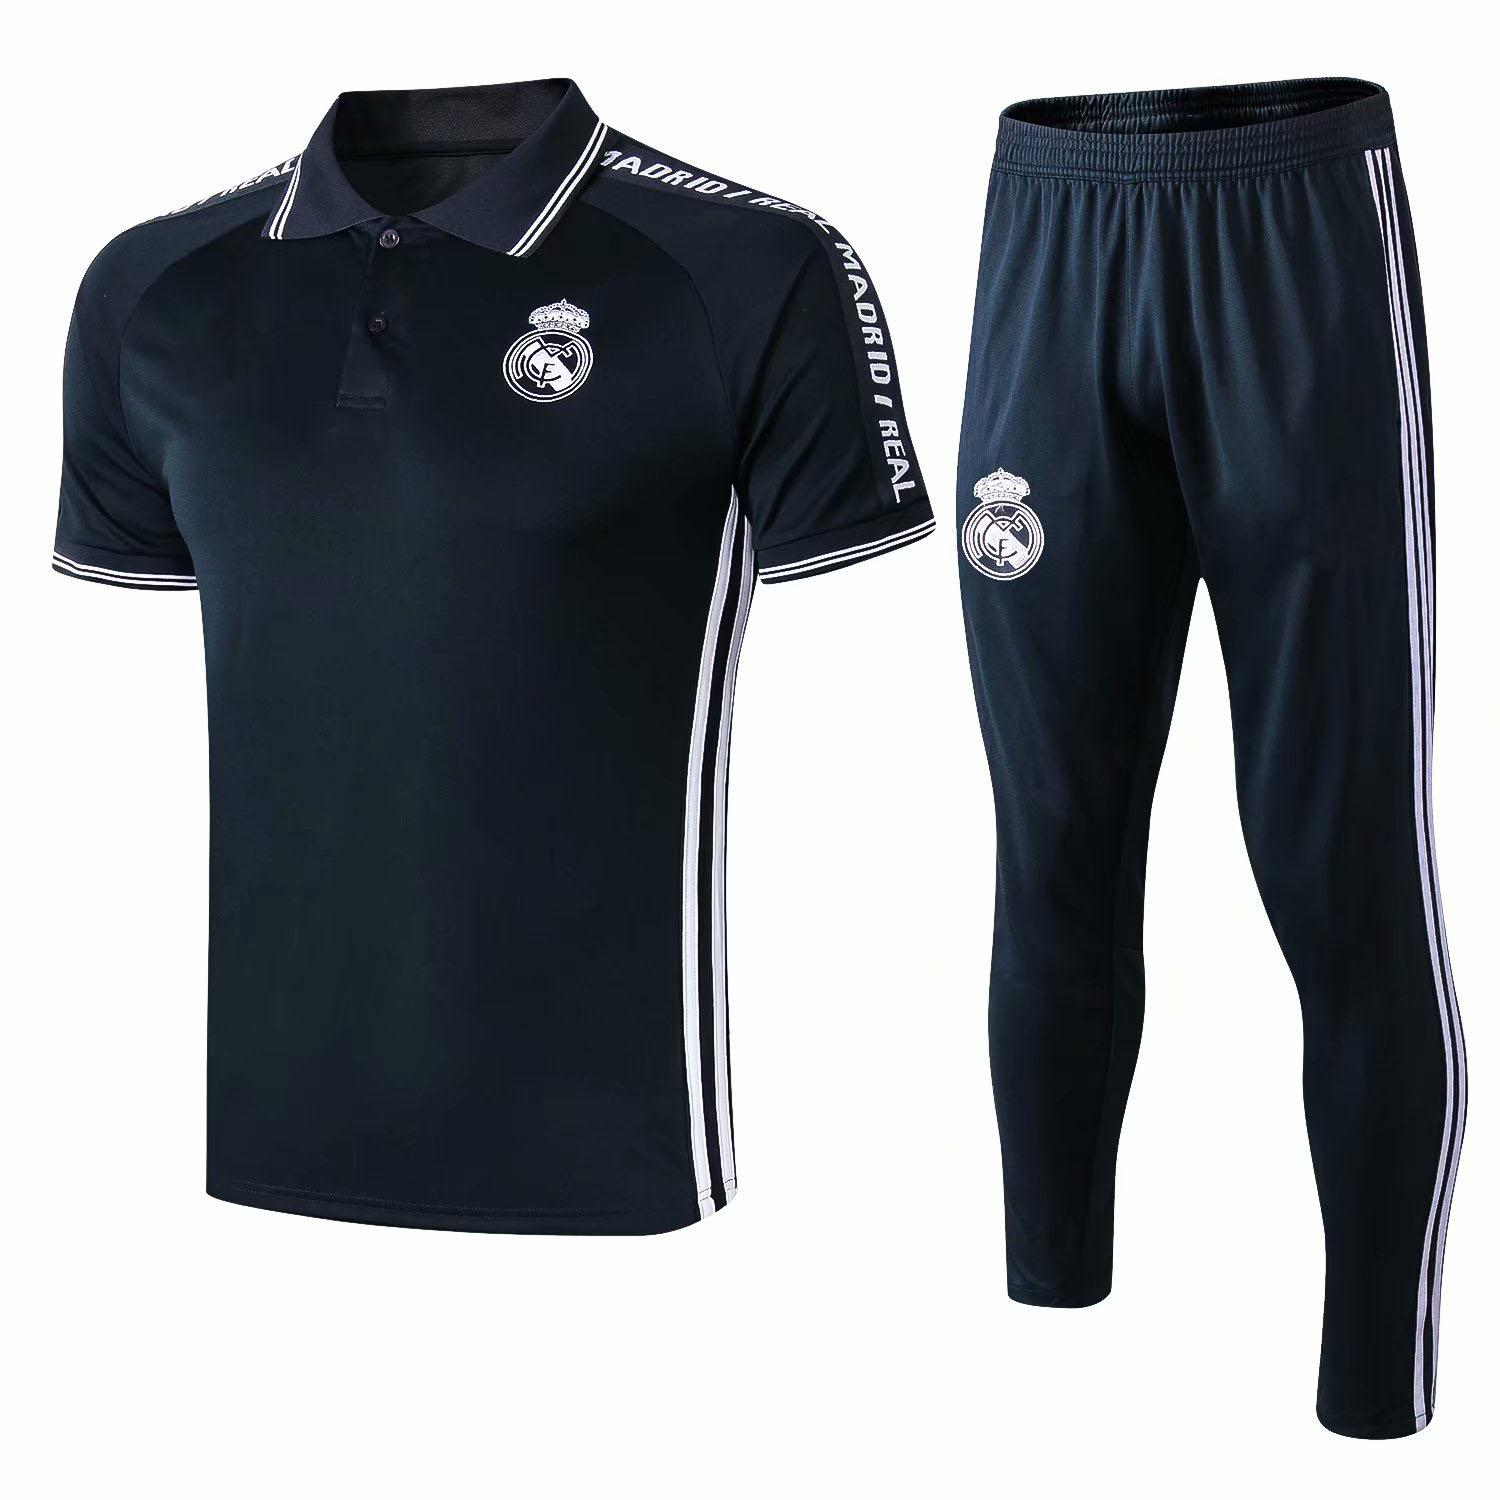 fed0f896 summer 19 20 MARCELO MODRIC KROOS BALE adult polo shirts 18 19 men's short  sleeve football tracksuits long trousers warms up training suits